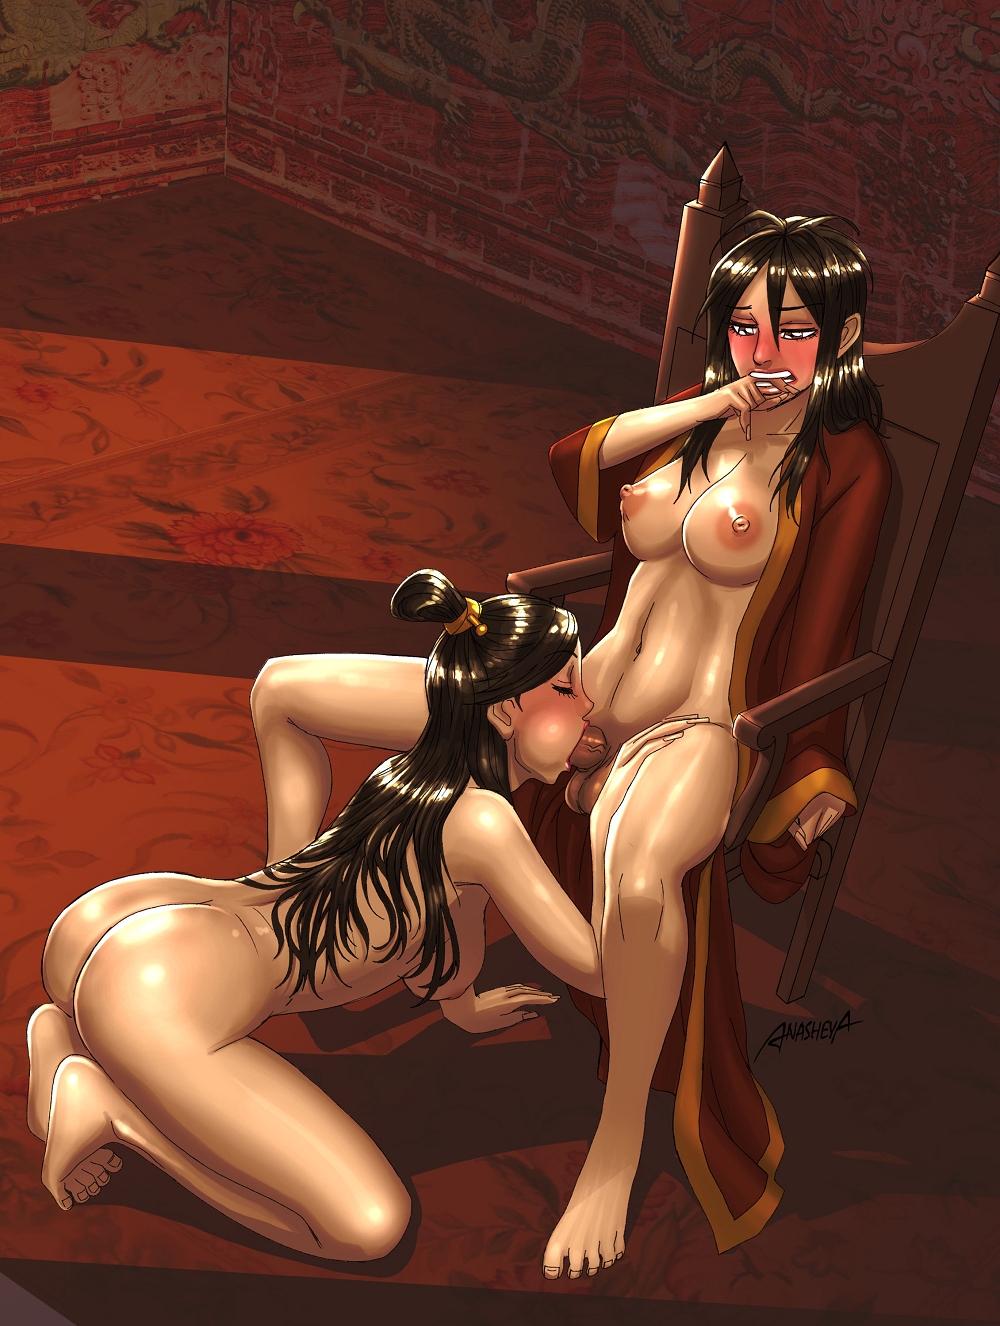 futa airbender the last avatar Sonic and amy having it in bed